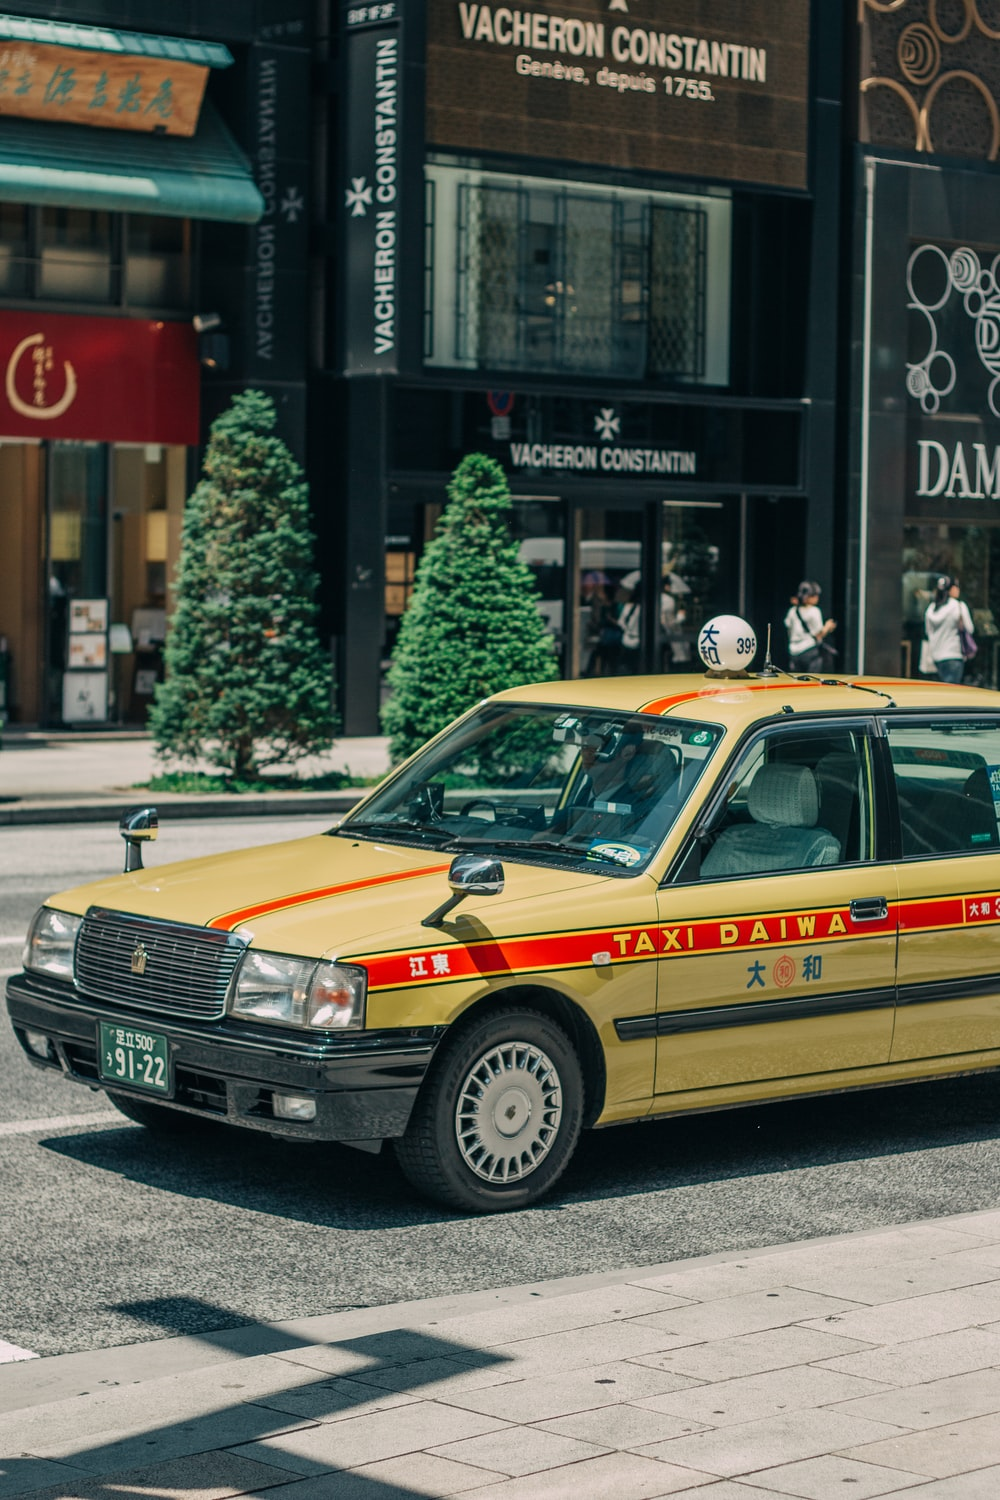 Tokyo Taxi Pictures | Download Free Images on Unsplash